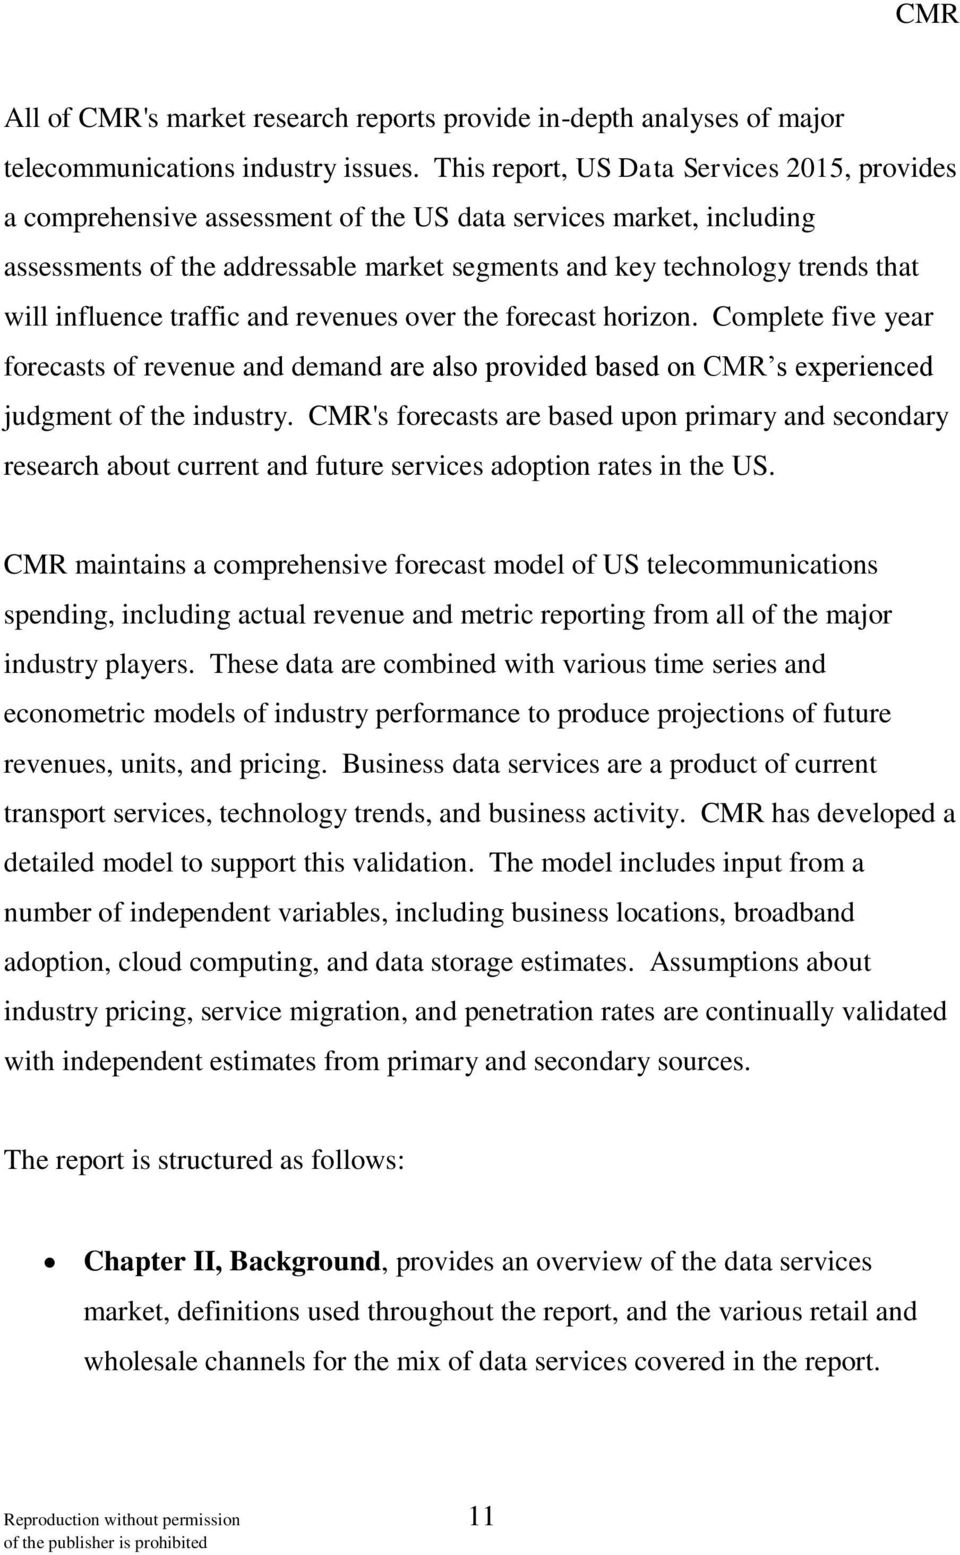 influence traffic and revenues over the forecast horizon. Complete five year forecasts of revenue and demand are also provided based on CMR s experienced judgment of the industry.